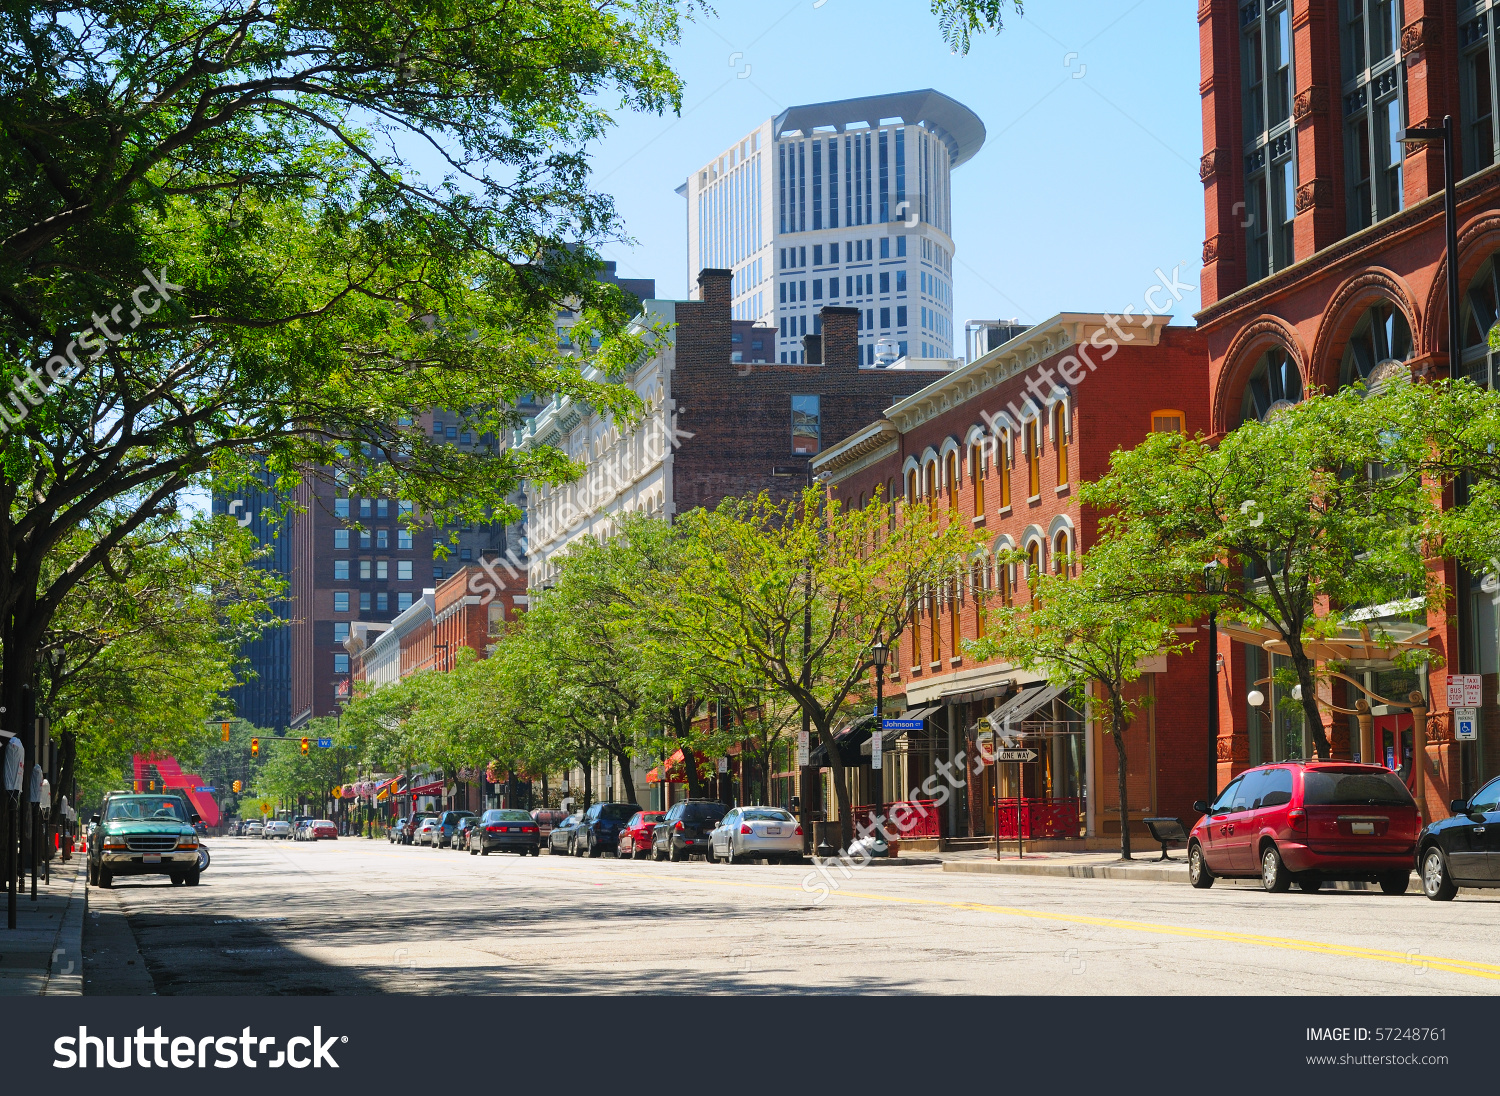 A Street In Downtown Cleveland Ohio'S Trendy Warehouse District.